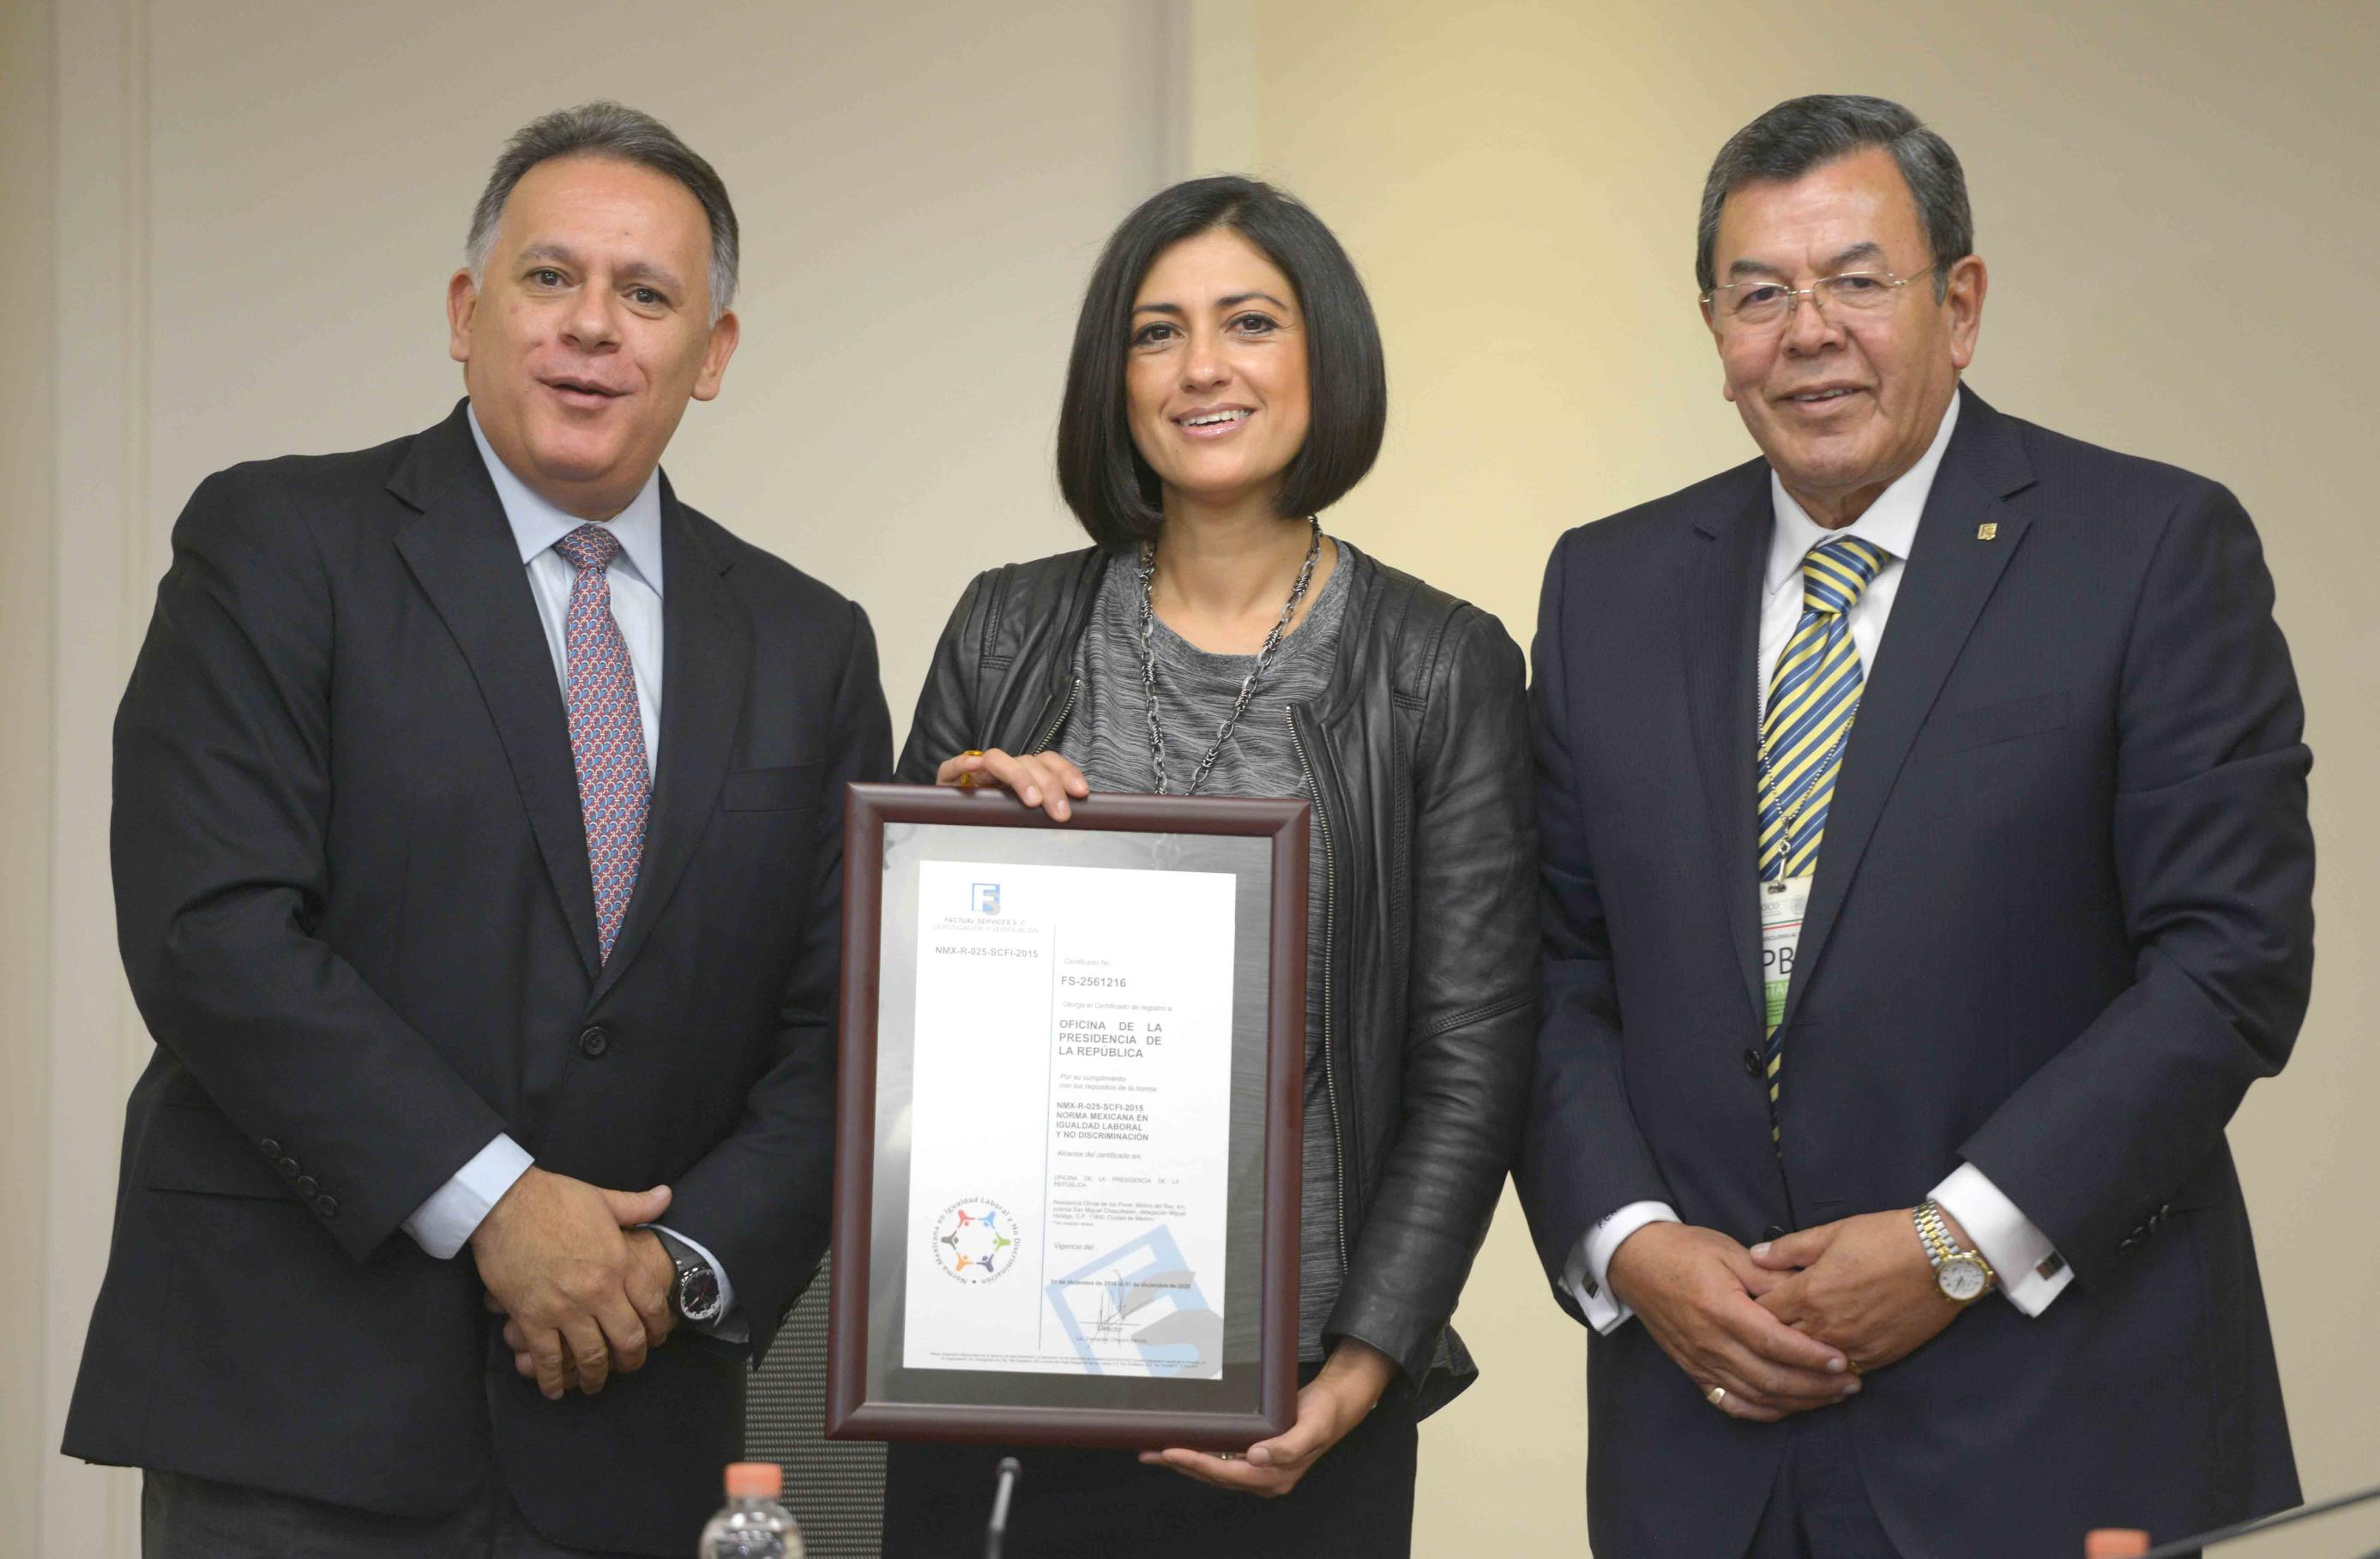 Lorena Cruz Sánchez, President of the National Women's Institute (INMUJERES), said that this is the first time a president has raised the issue of equality and the prevention of violence against women to the highest level.